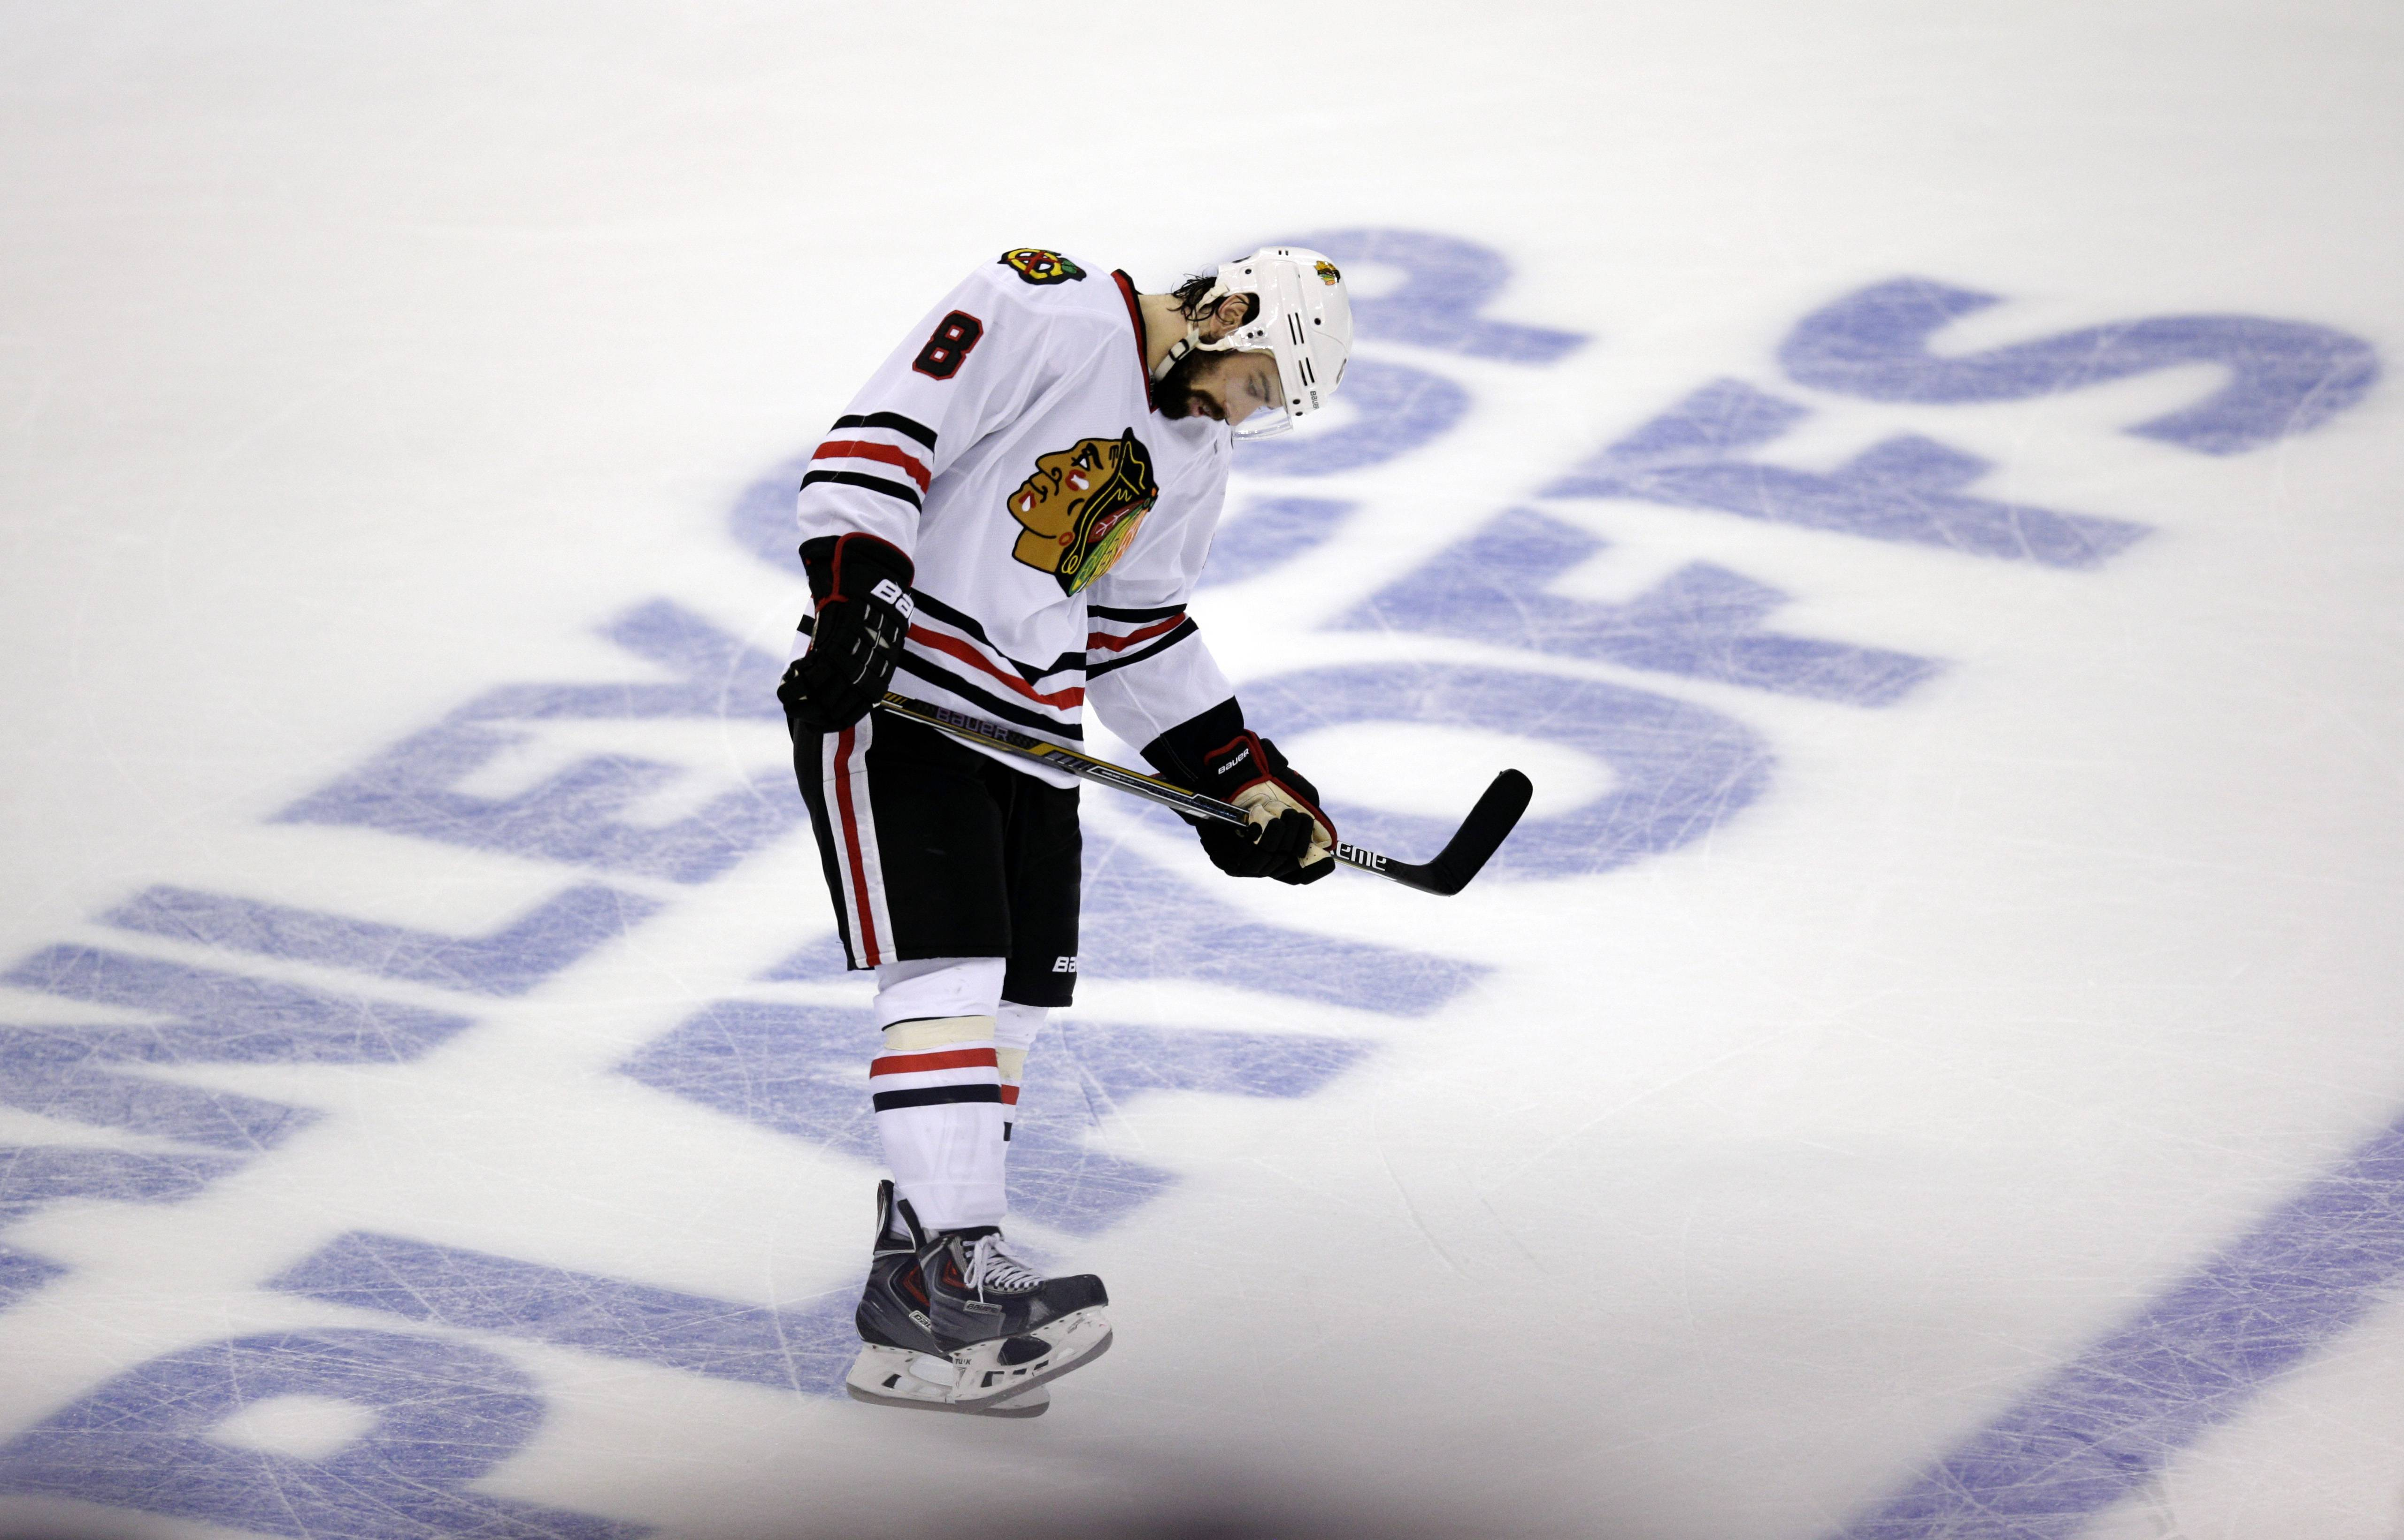 Chicago Blackhawks' Nick Leddy puts his head down as he skates on the ice after Los Angeles Kings' Tanner Pearson scored a goal during the third period of Game 4 of the Western Conference finals of the NHL hockey Stanley Cup playoffs on Monday, May 26, 2014, in Los Angeles. The Kings won 5-2.